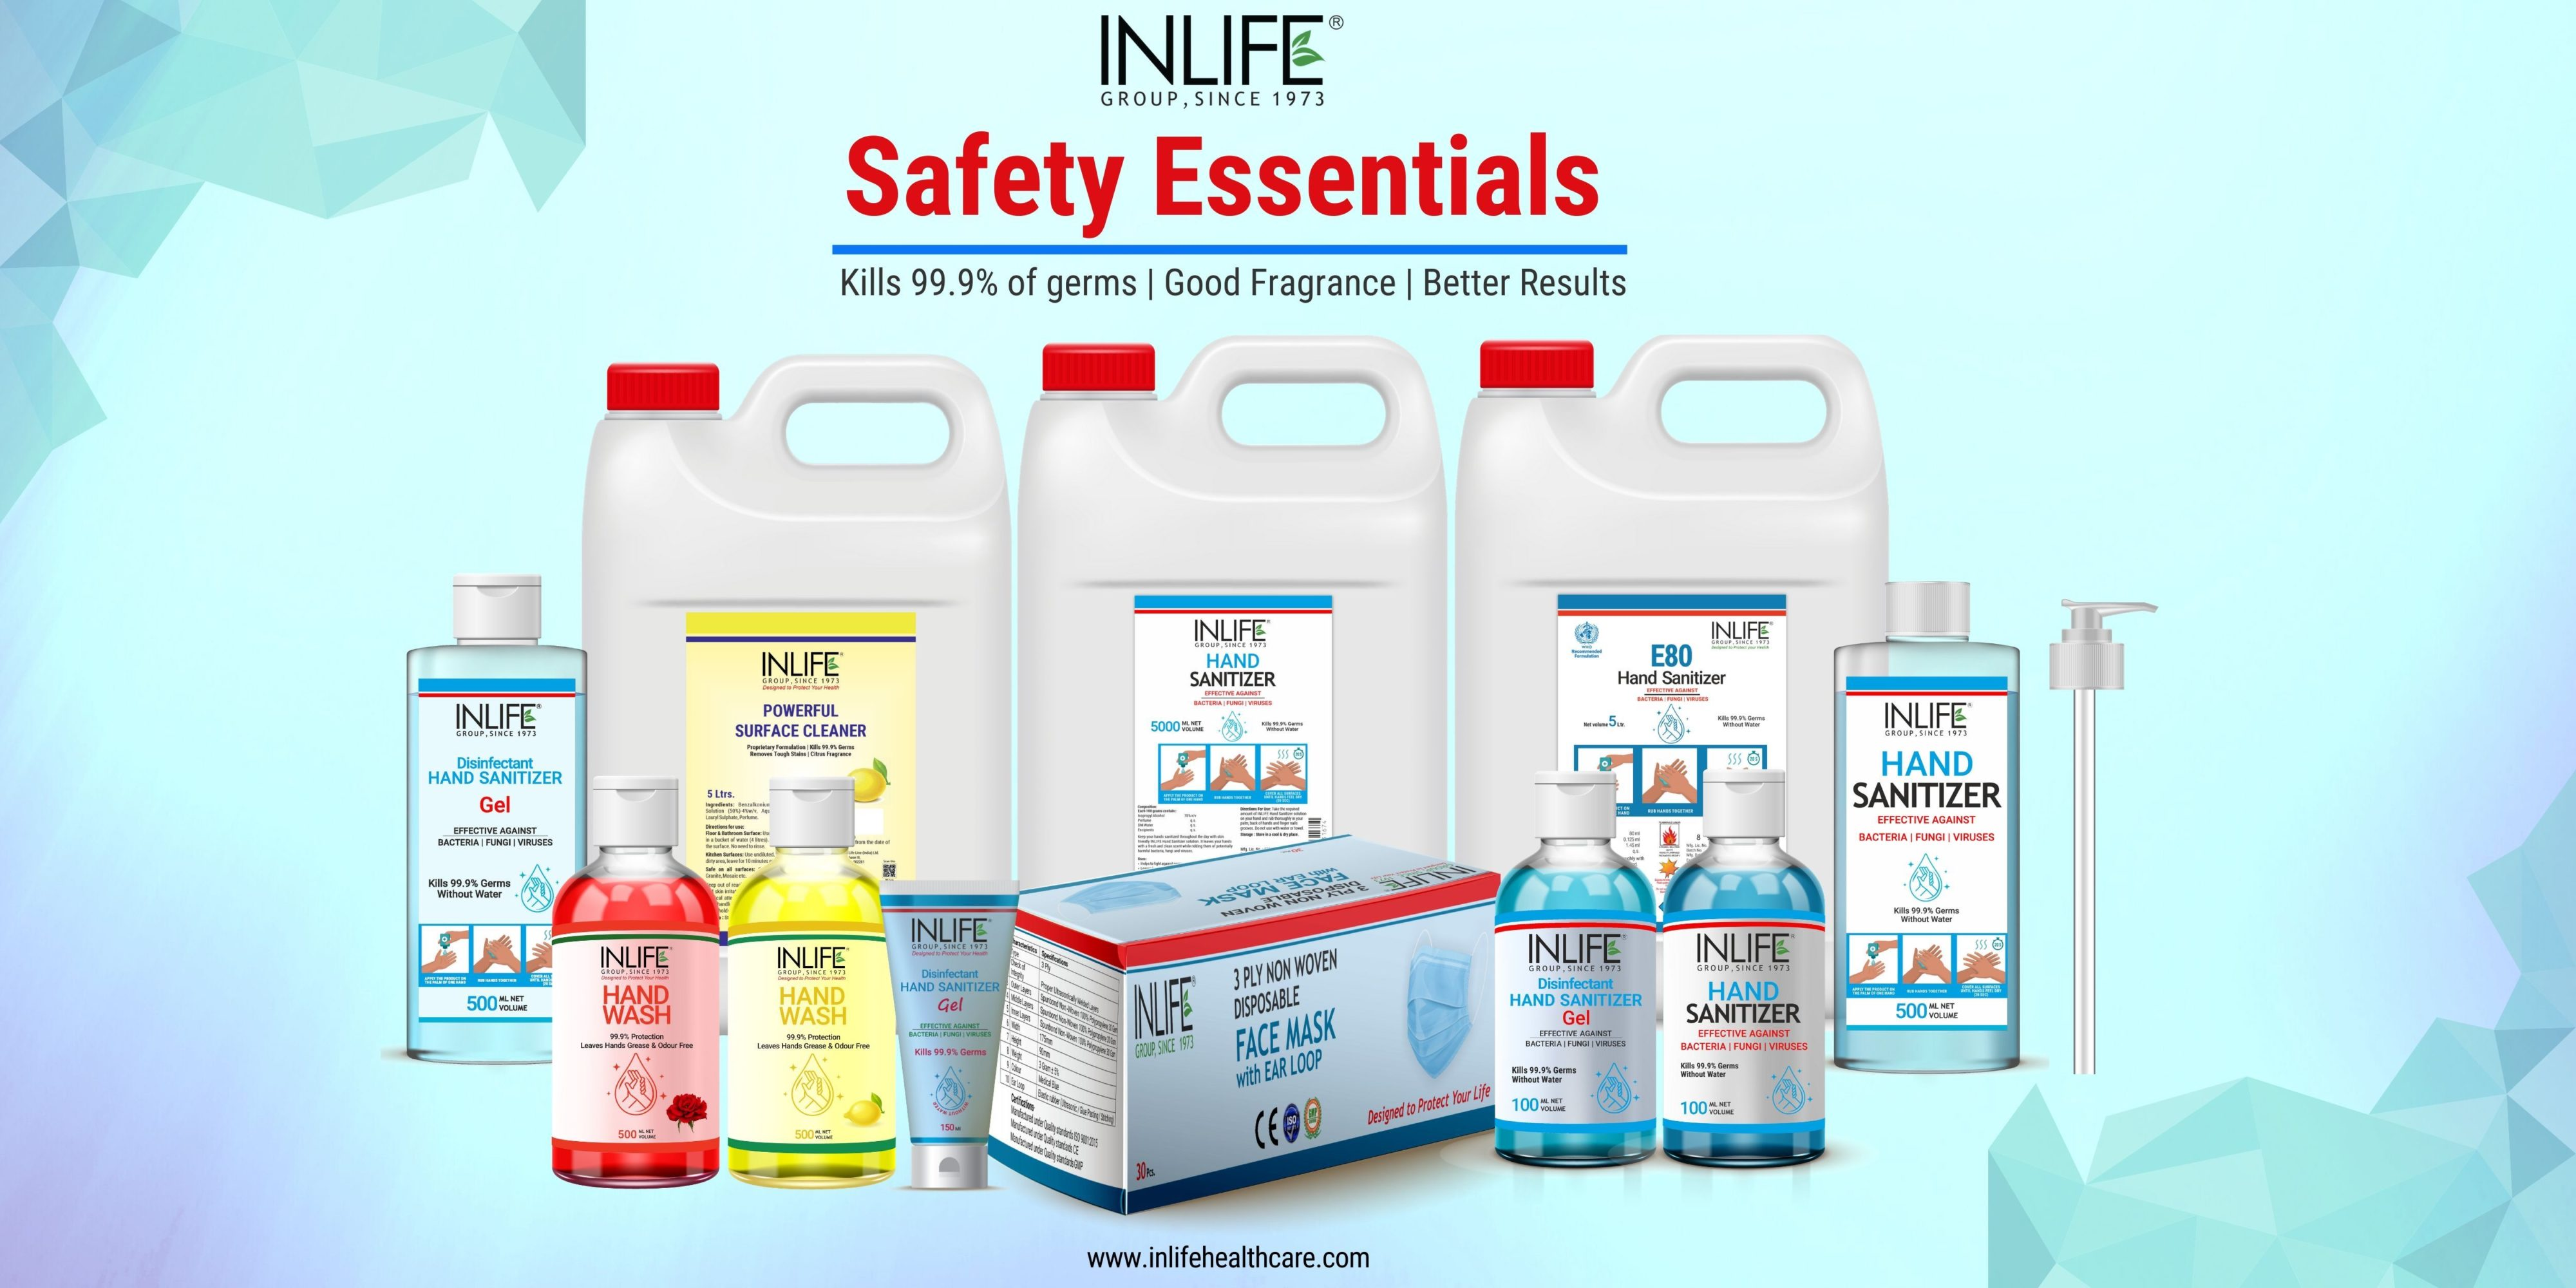 INLIFE Safety Essentials